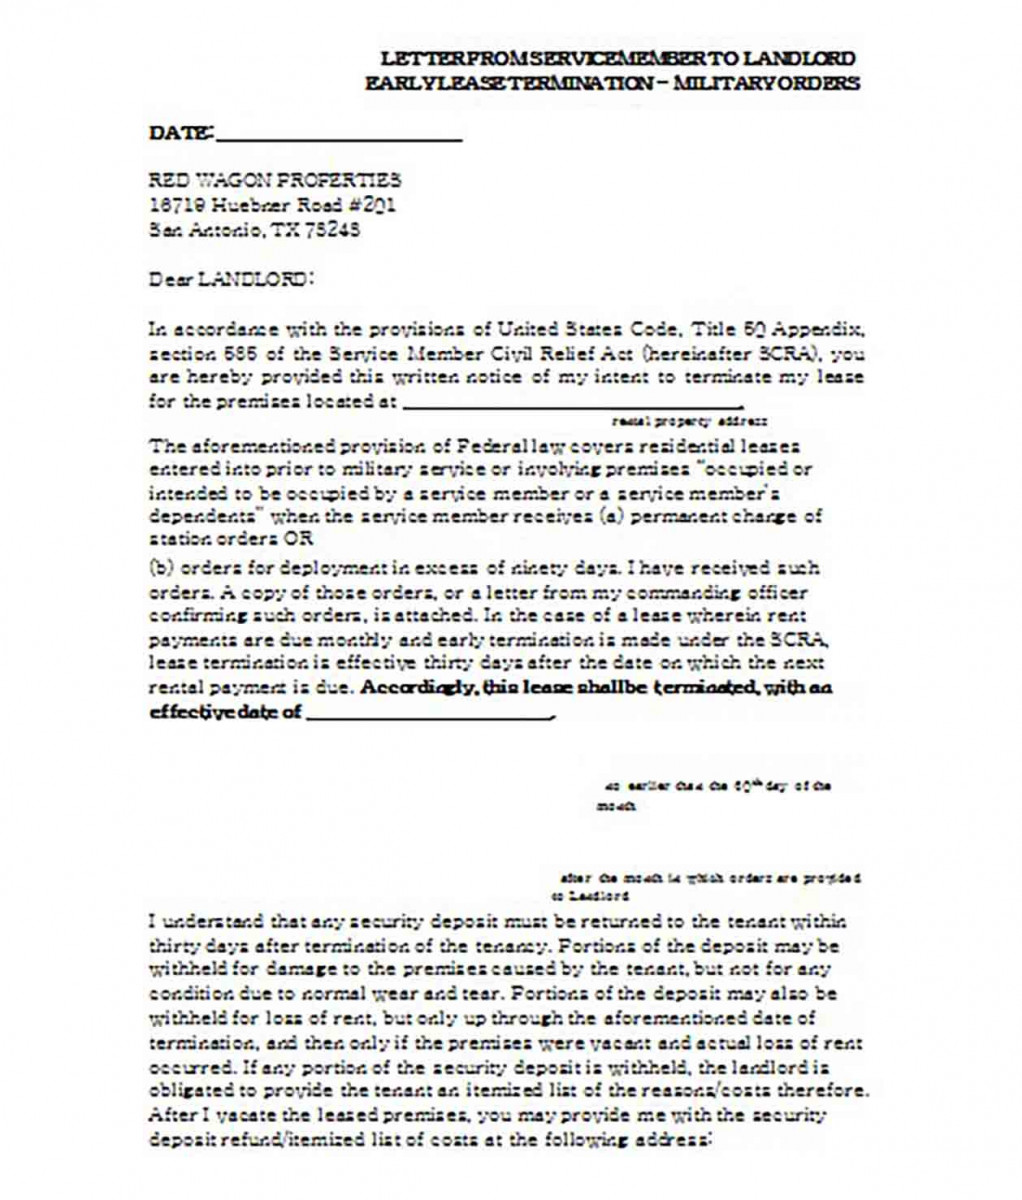 Letter From Servicemember to Landlord Early Lease Termination